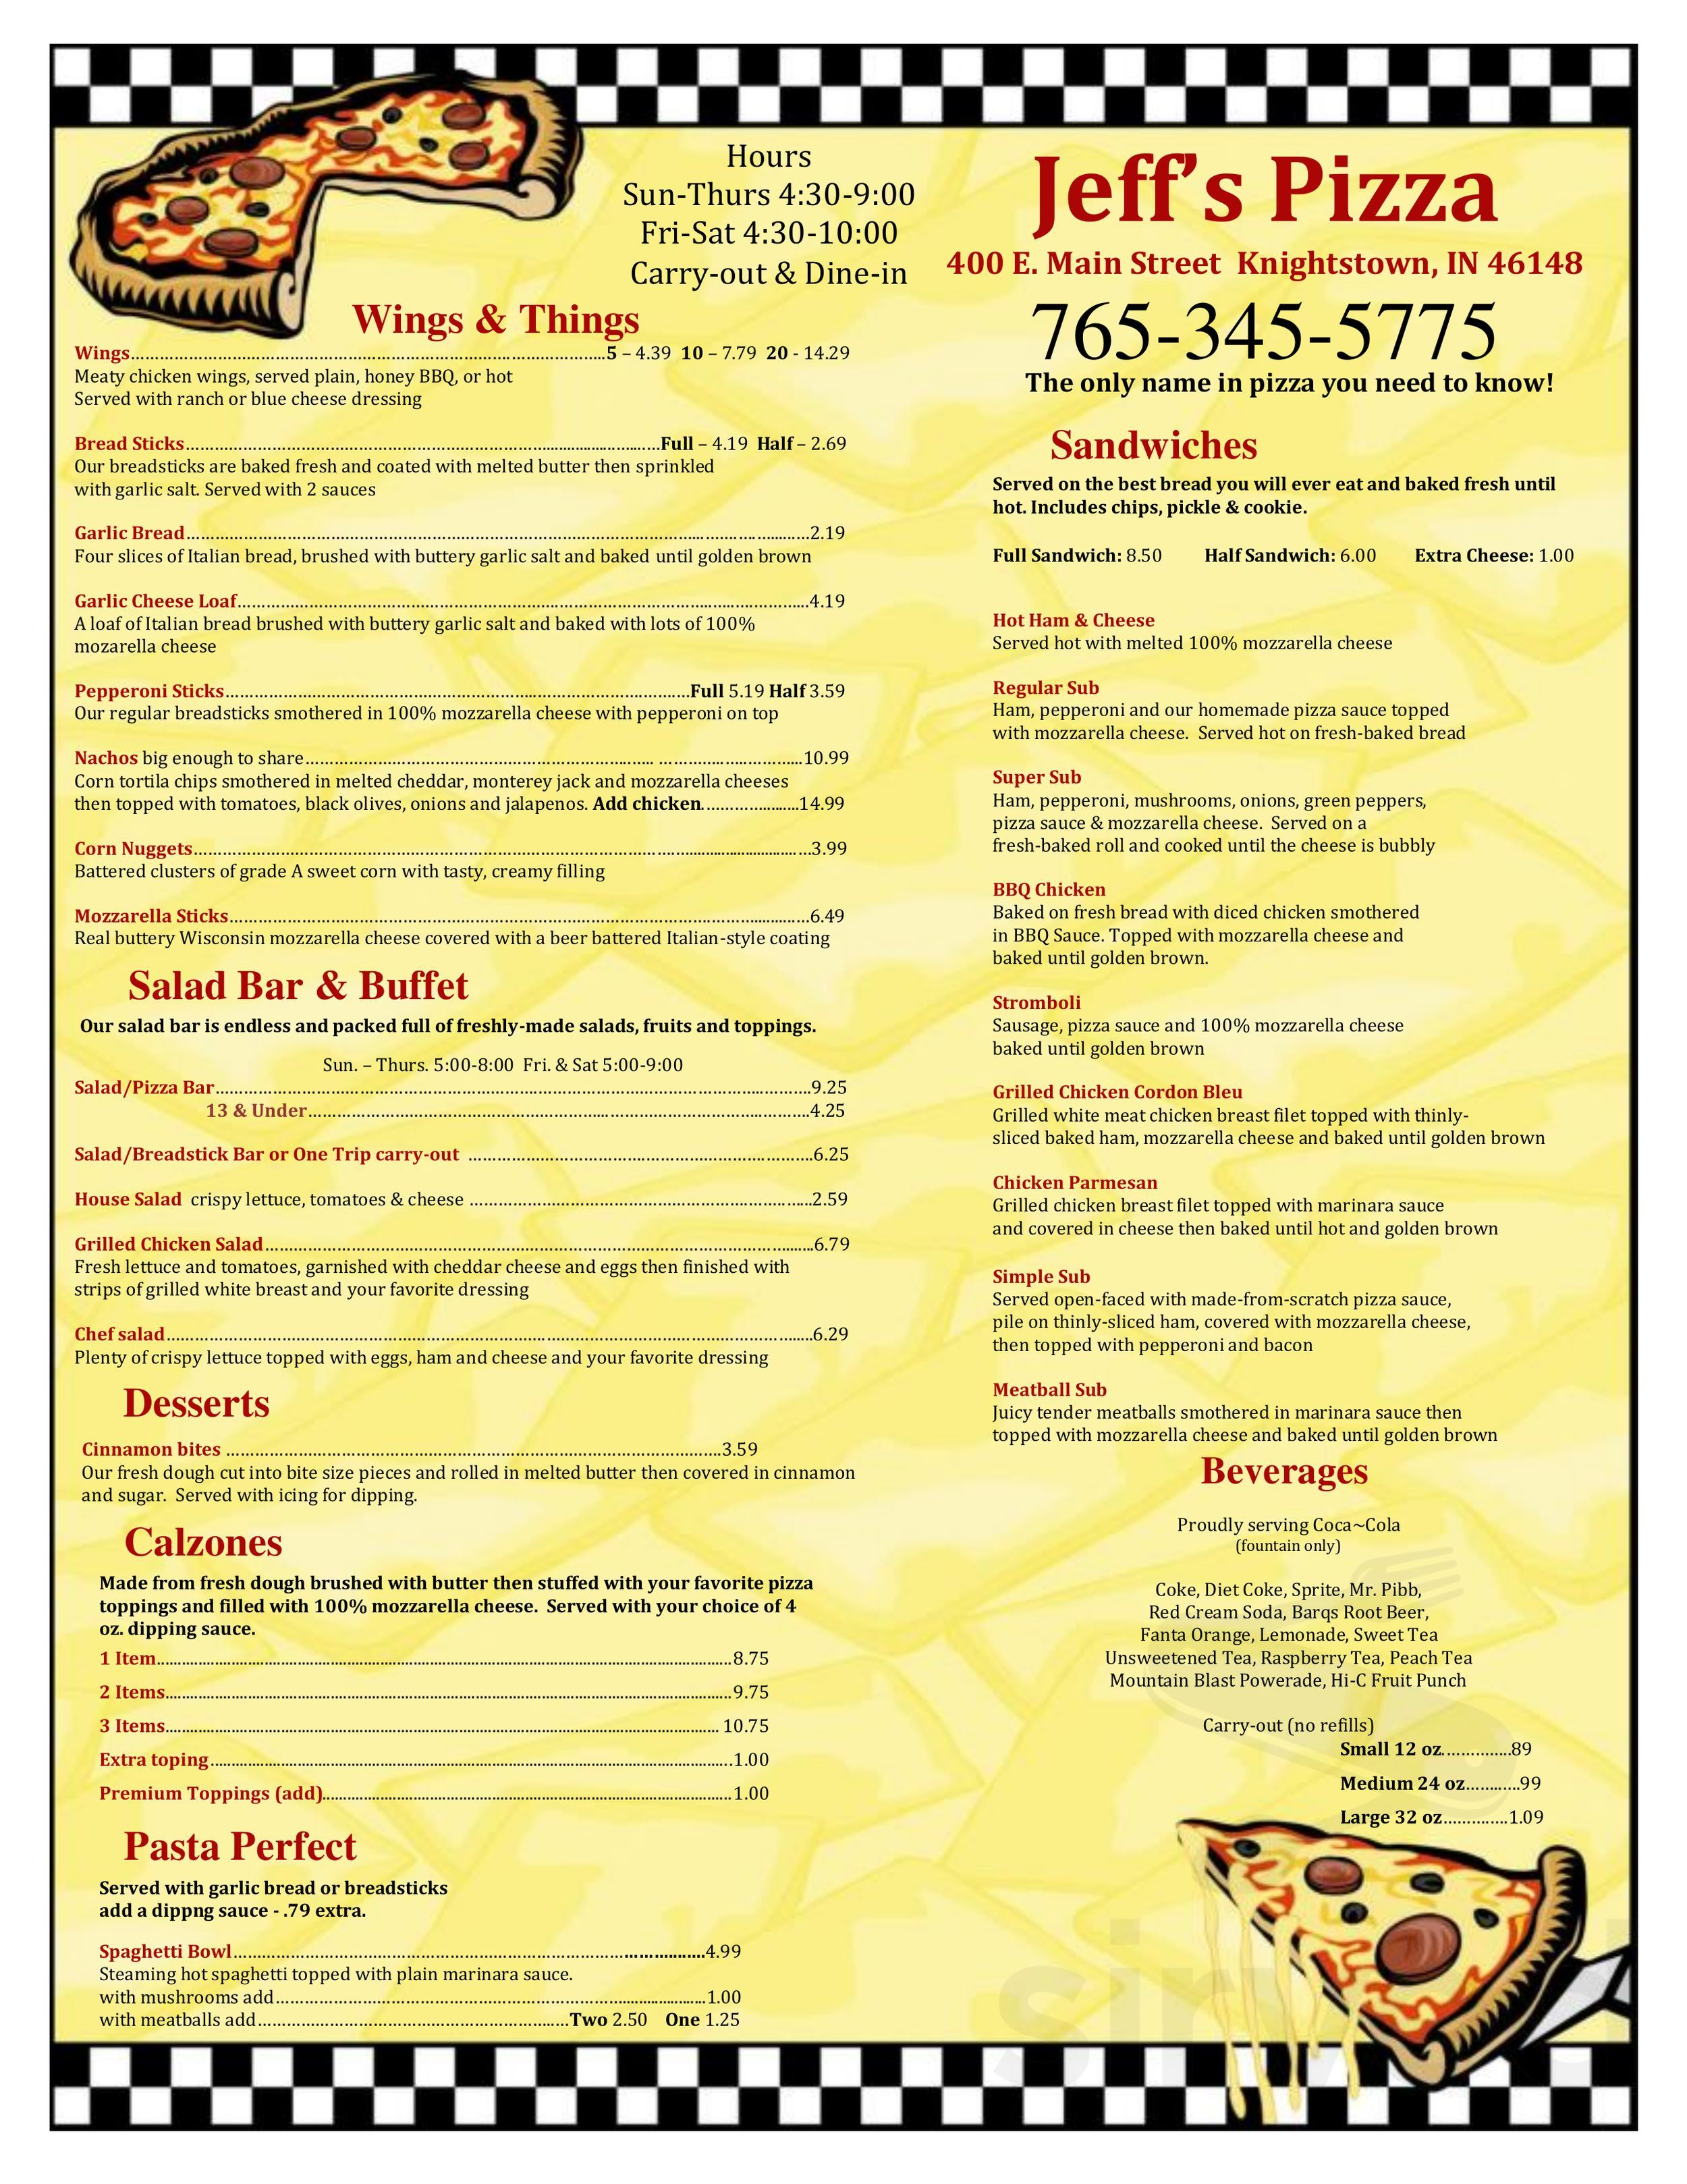 Knightstown Indiana Map.Menu For Jeffs Pizza In Knightstown Indiana Usa